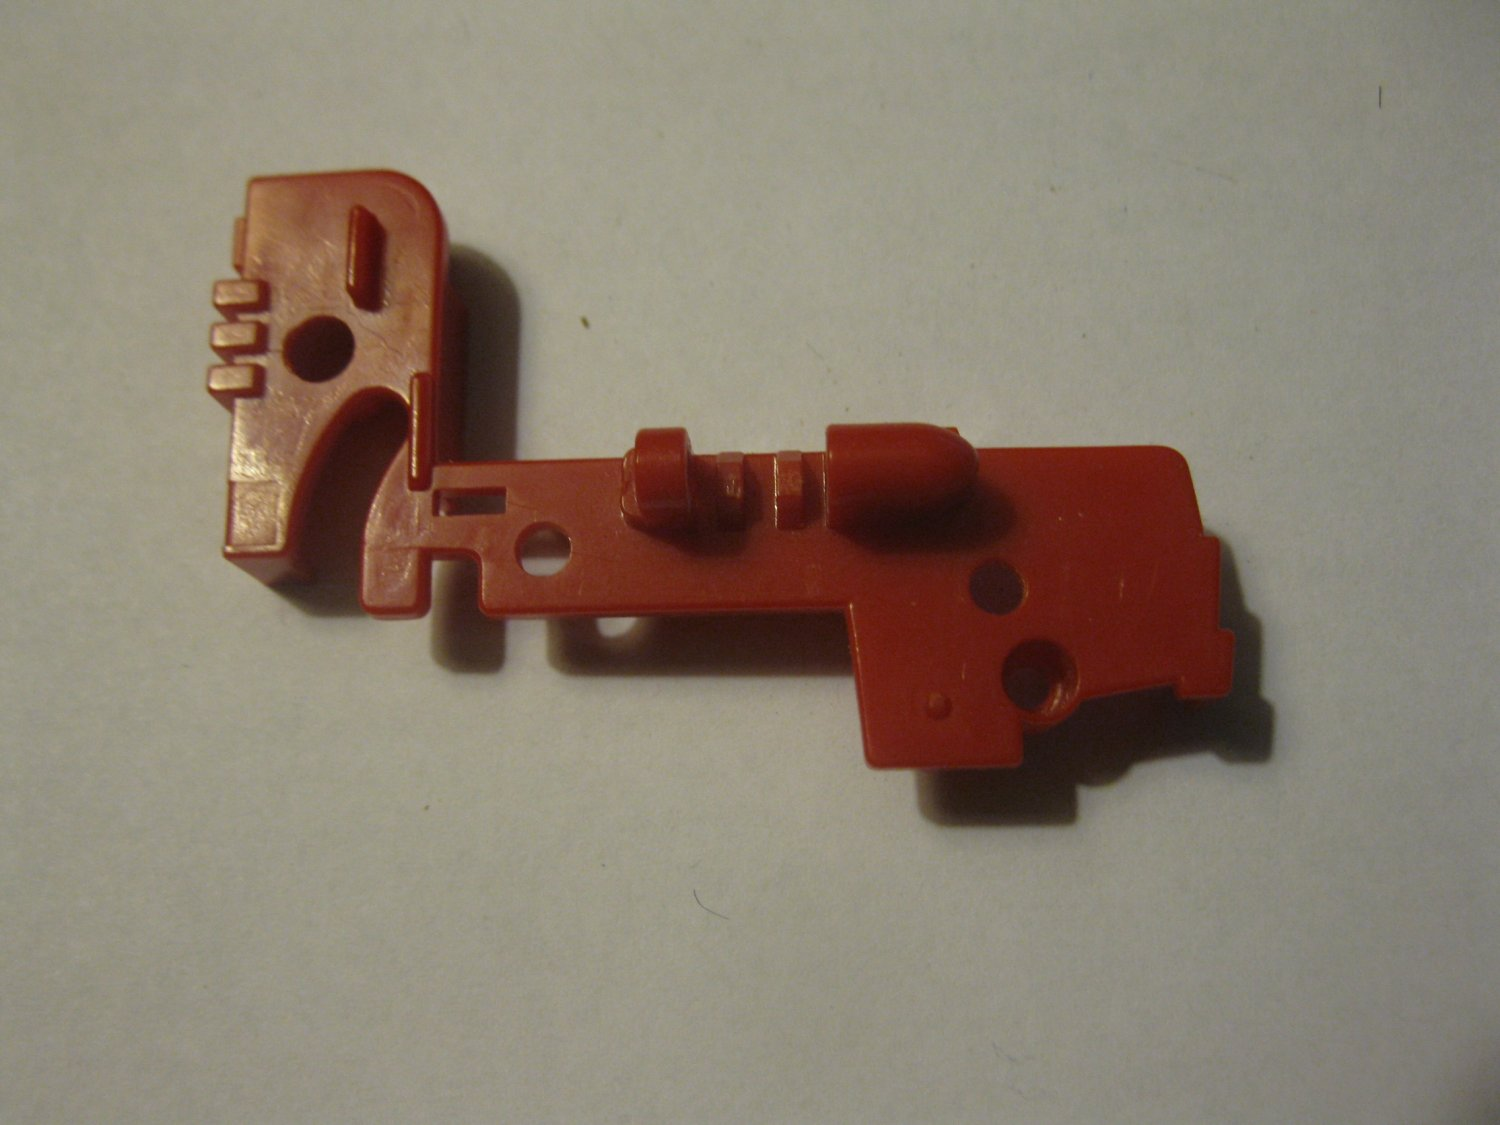 G1 Transformers Action figure part: 1984 Ratchet - Ambulance Interior Red Section #2